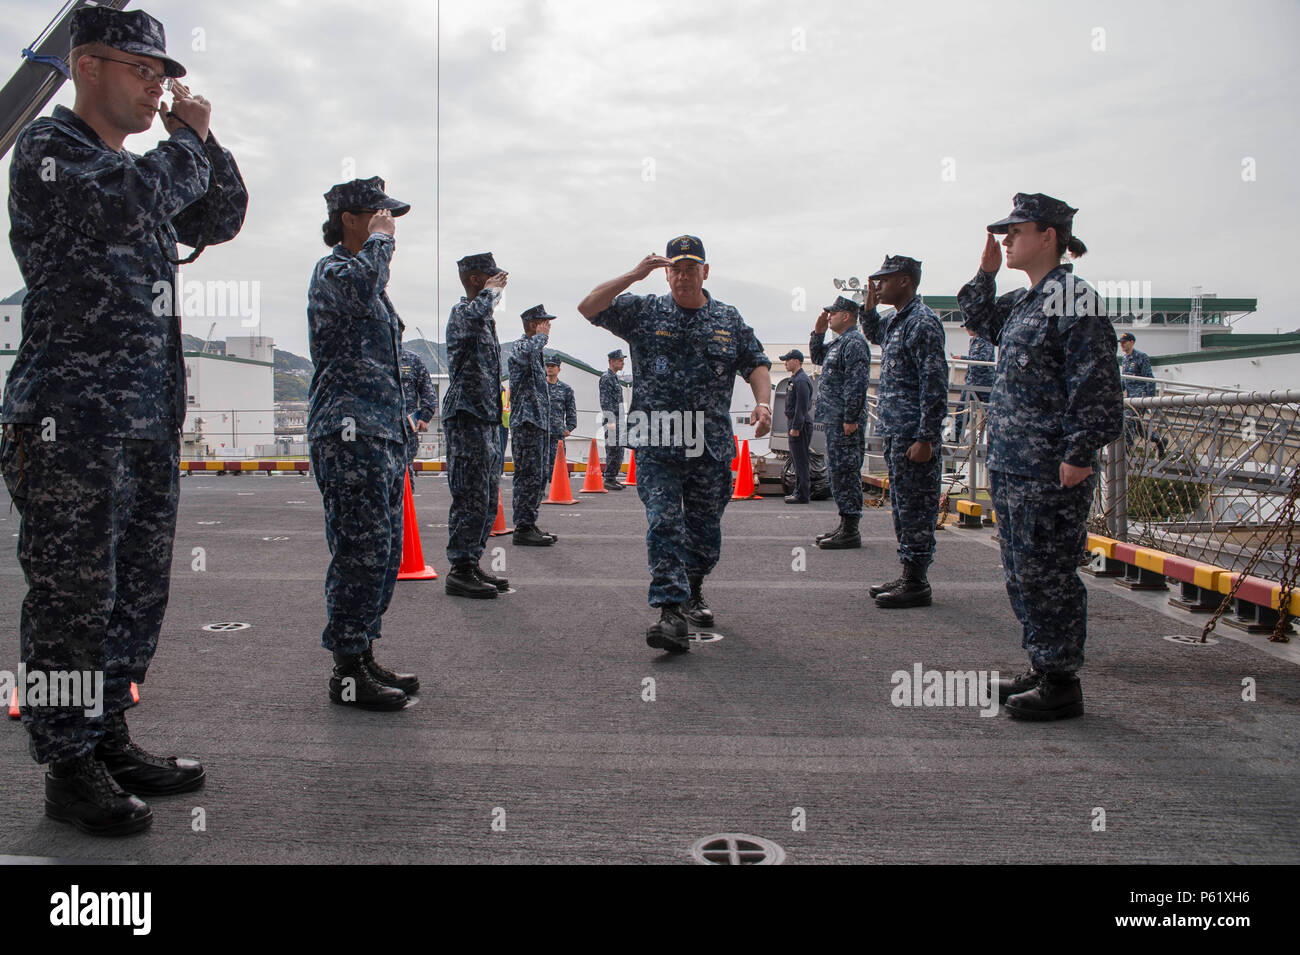 SASEBO, Japan (April 7, 2016) – Commander, Expeditionary Strike Group (ESG) 7, Rear Adm. John B. Nowell Jr. salutes sideboys as he enters the quarterdeck aboard amphibious assault ship USS Bonhomme Richard (LHD 6). Bonhomme Richard is the lead ship of the Bonhomme Richard Amphibious Ready Group and is forward-deployed in the U.S. 7th Fleet area of operation. (U.S. Navy photo by Mass Communication Specialist 3rd Class Jeanette Mullinax/Released) Stock Photo